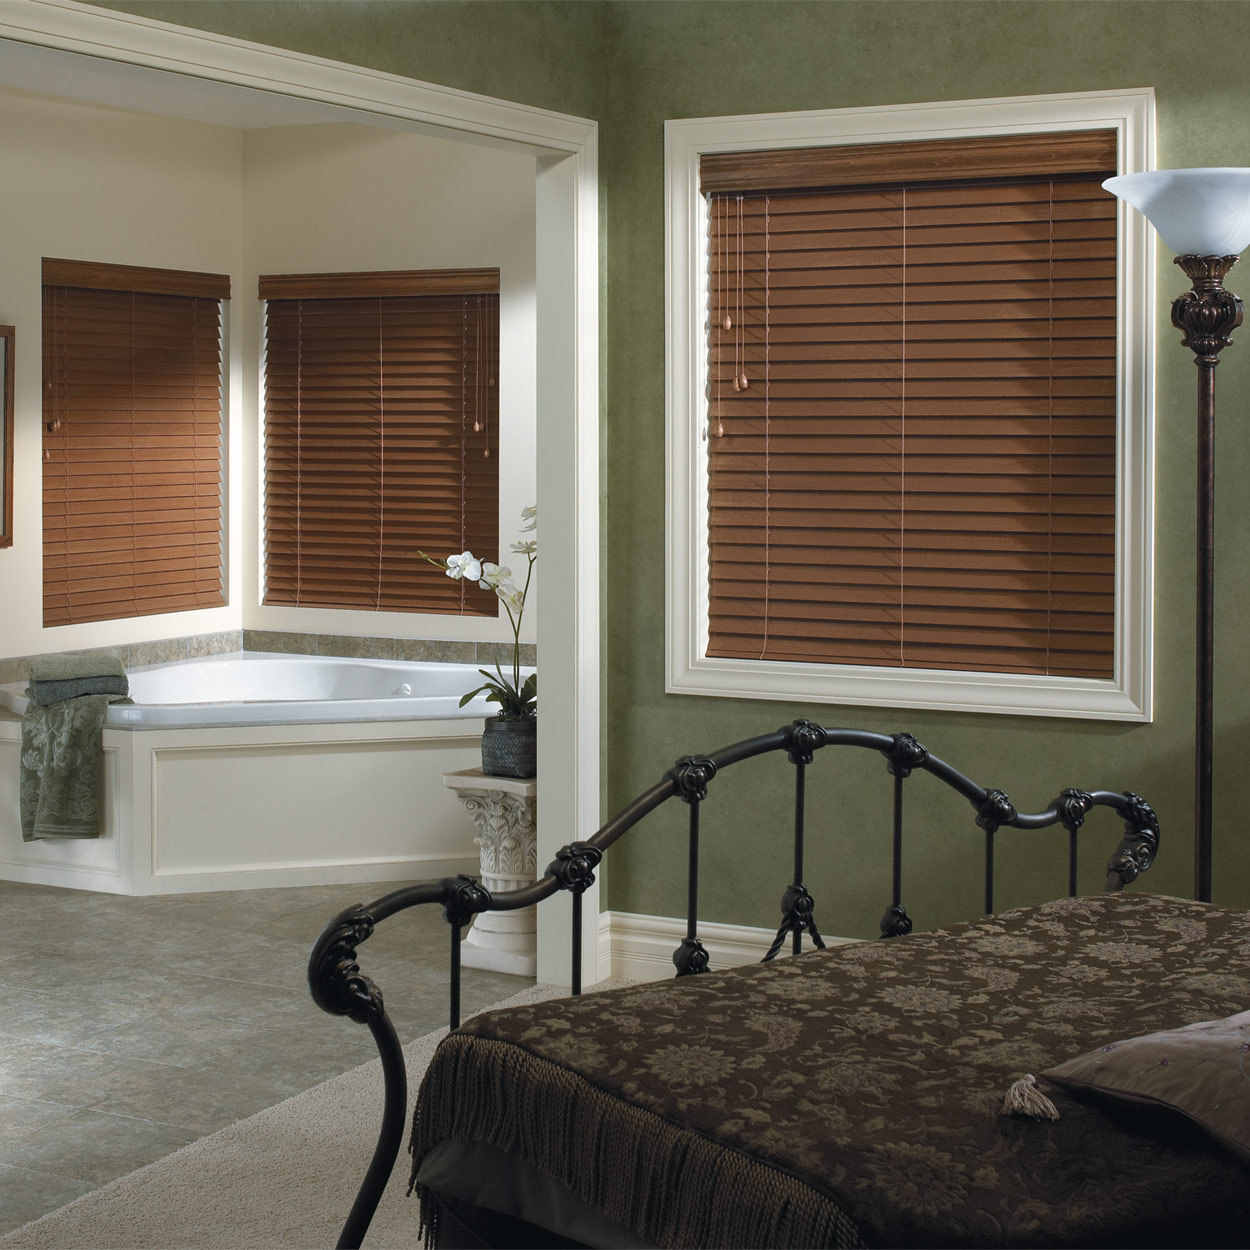 glass window with trim board and brown faux wood blinds on dark olive wall matched with tile floor plus bed for bedroom decor ideas